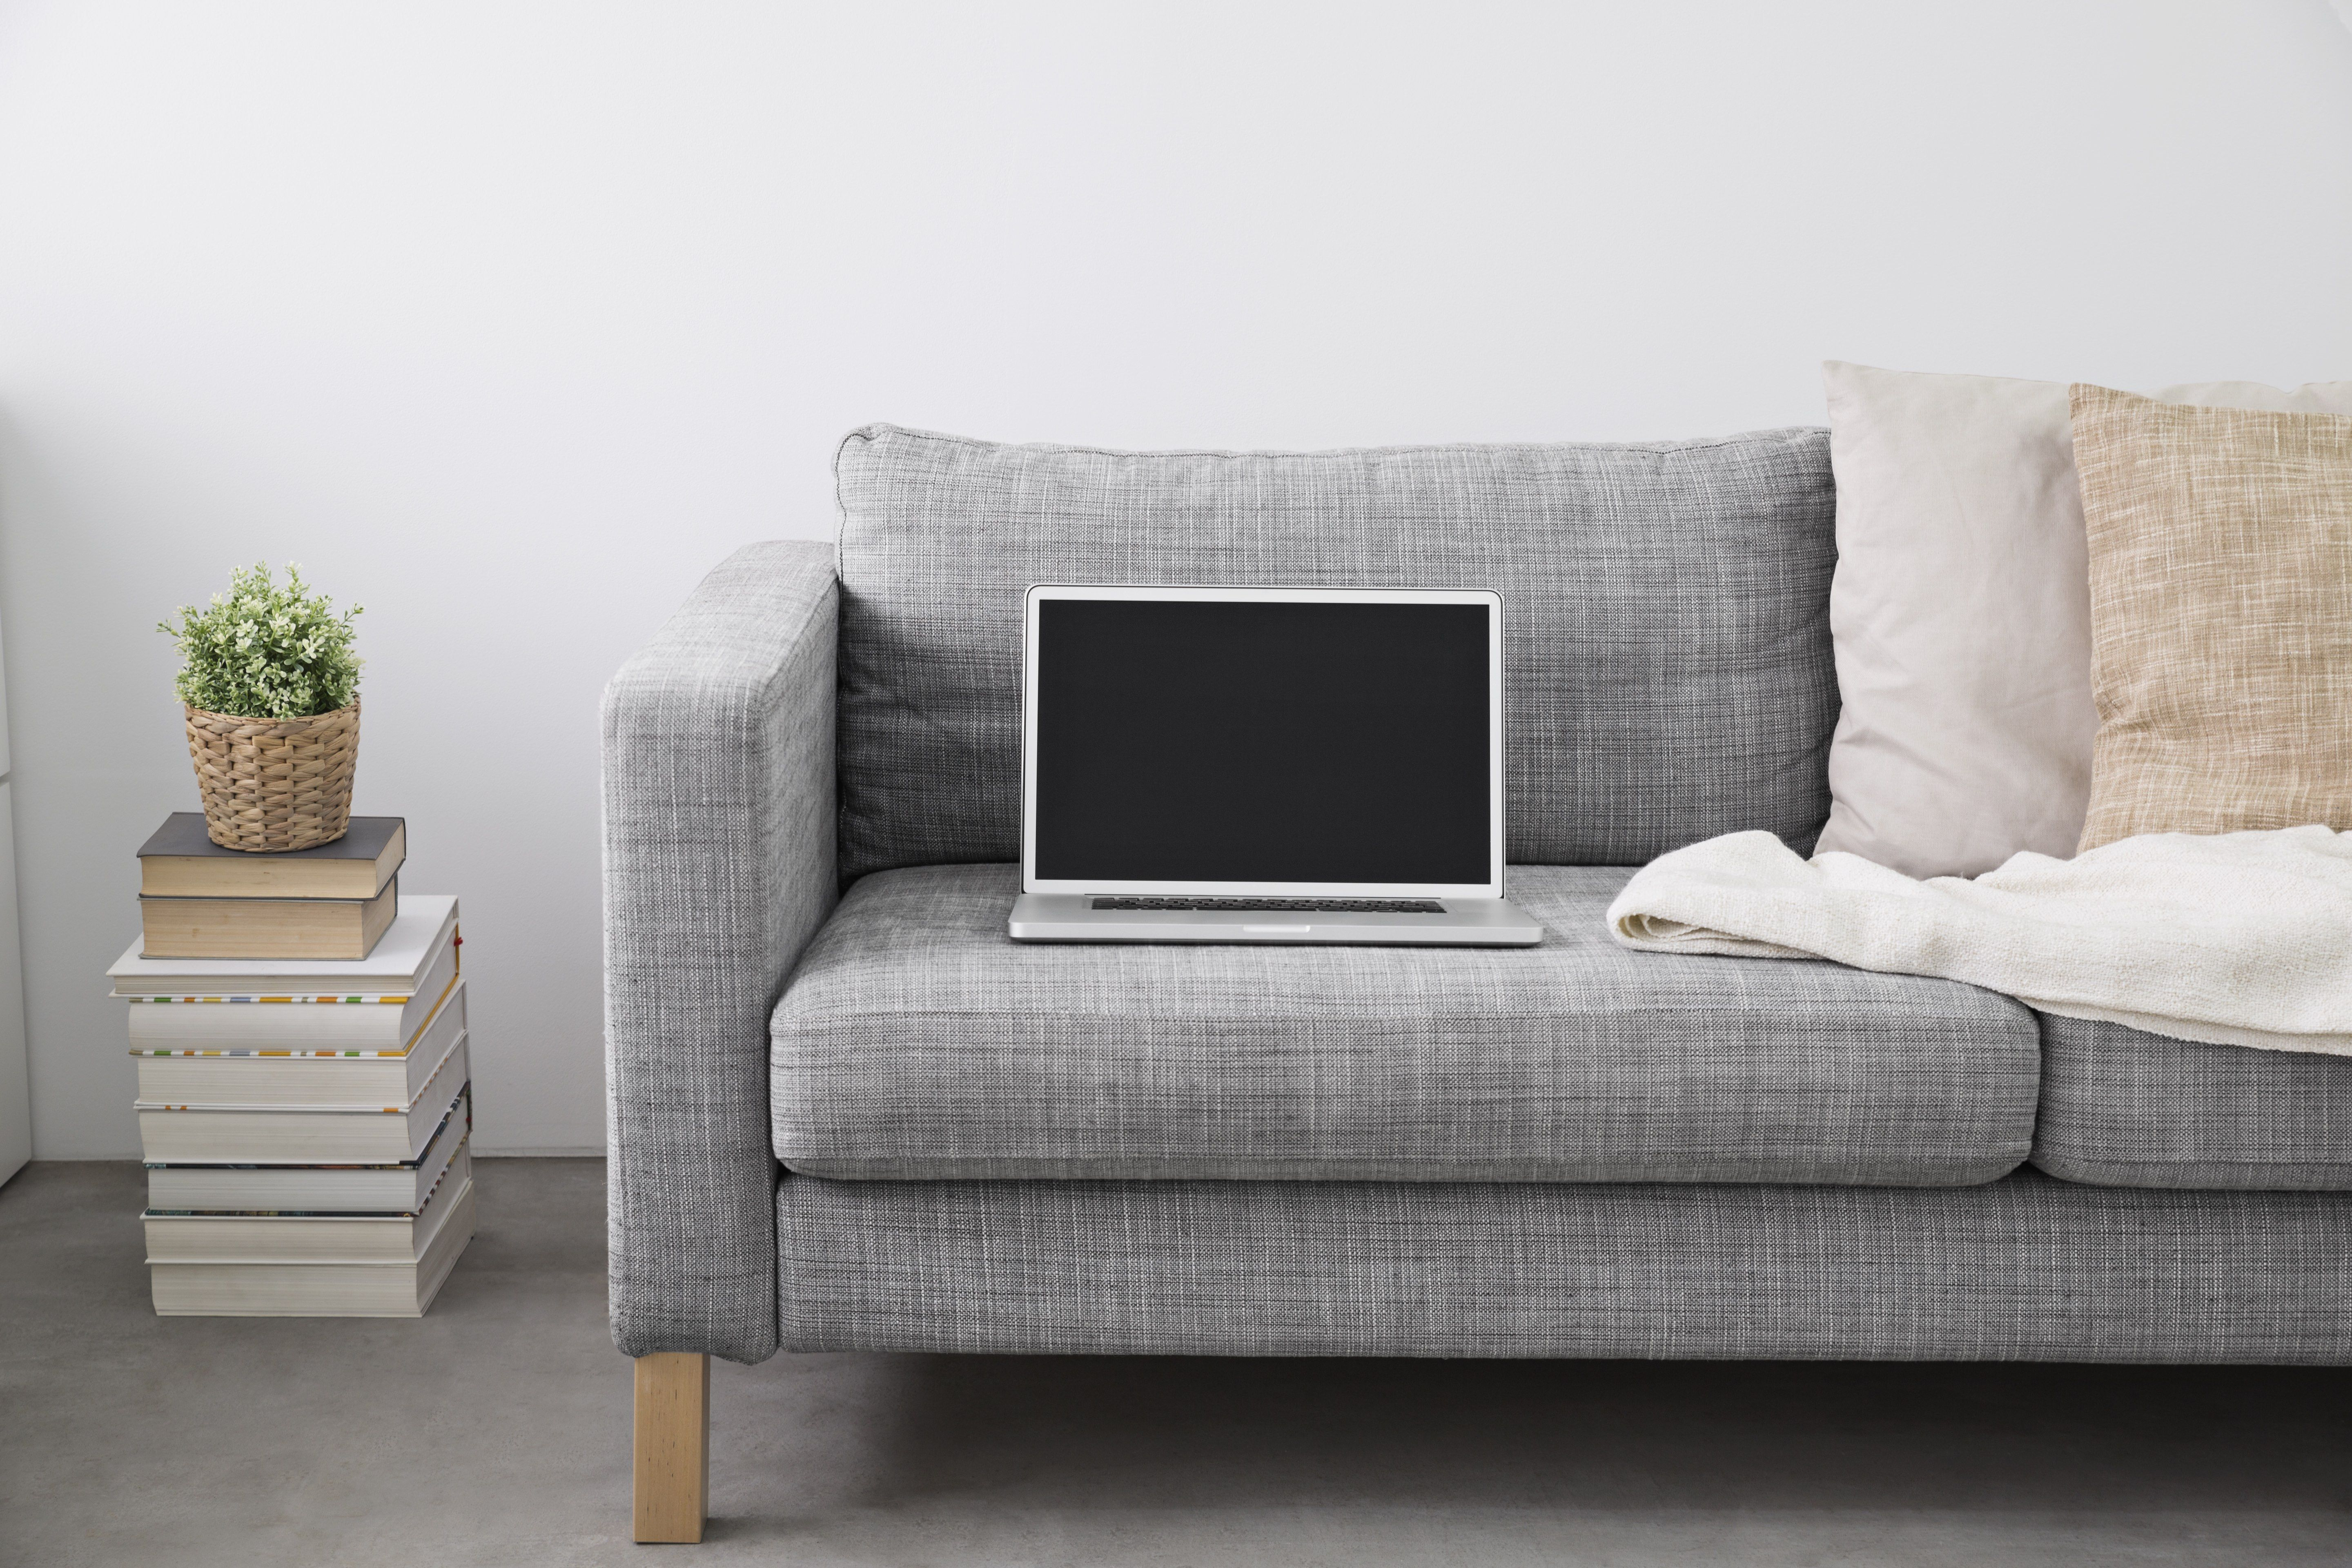 How To Buy A Sofa Online - Buying Furniture Online